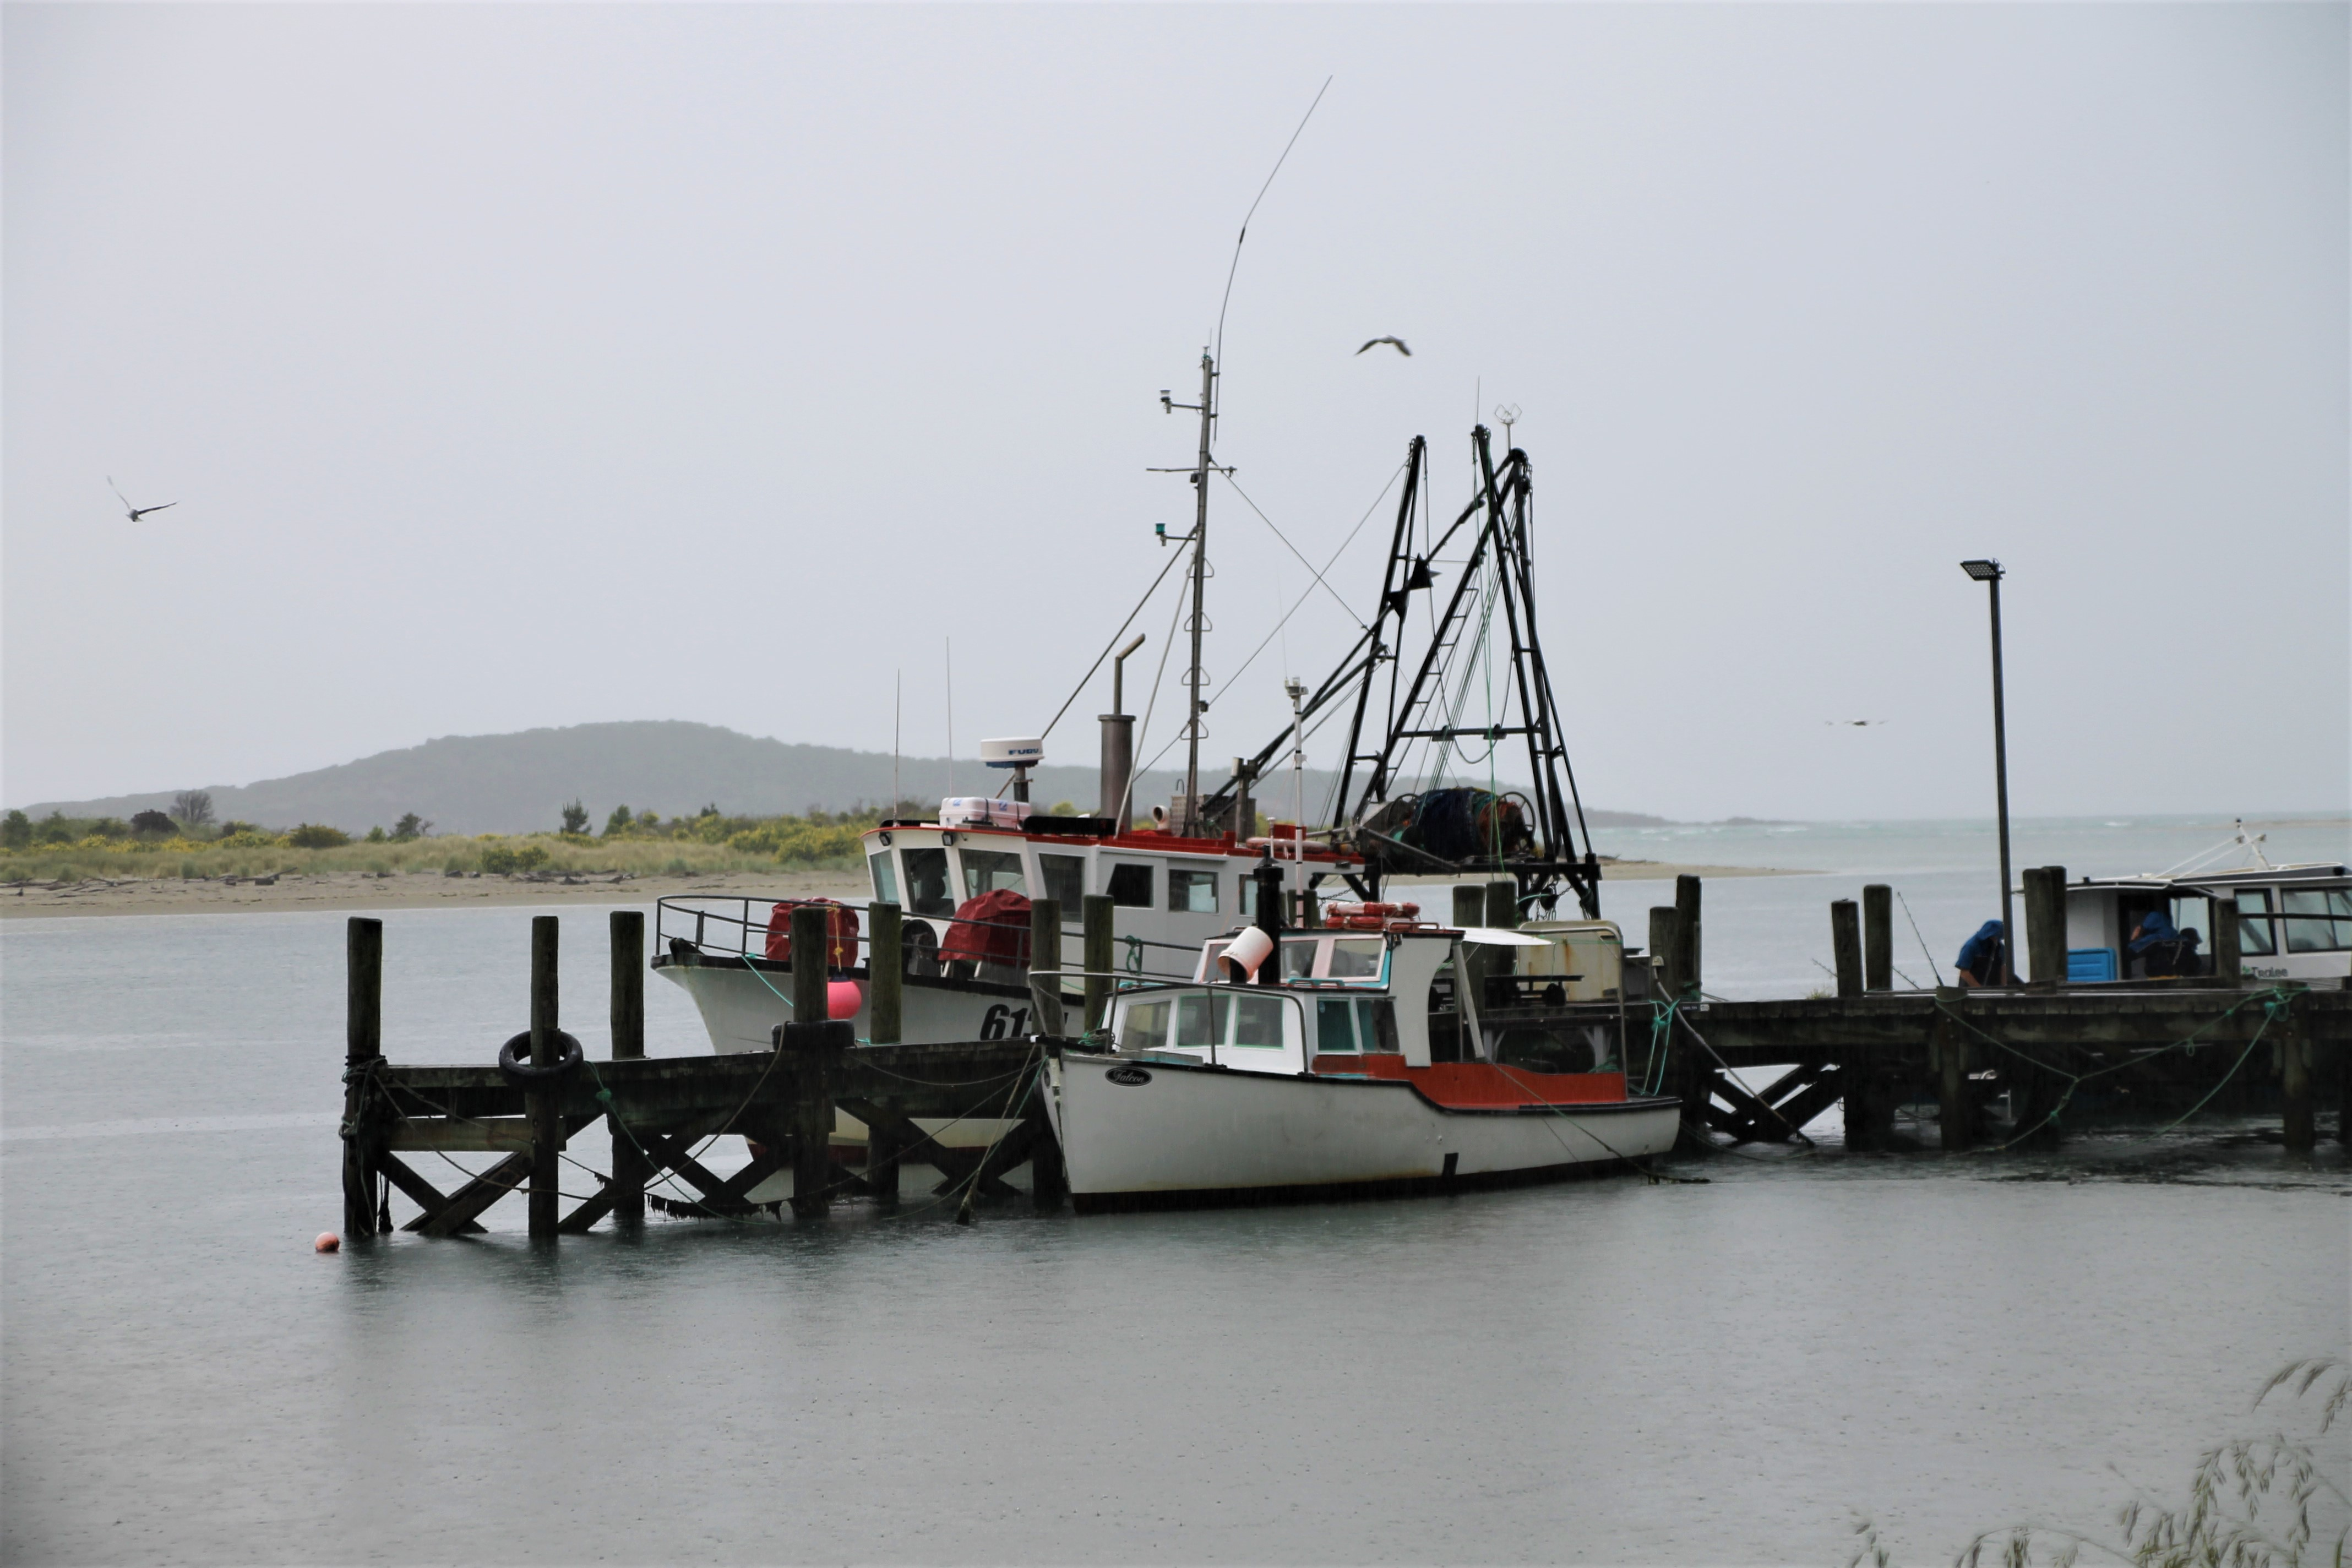 Fishing boats at Taireri Mouth.